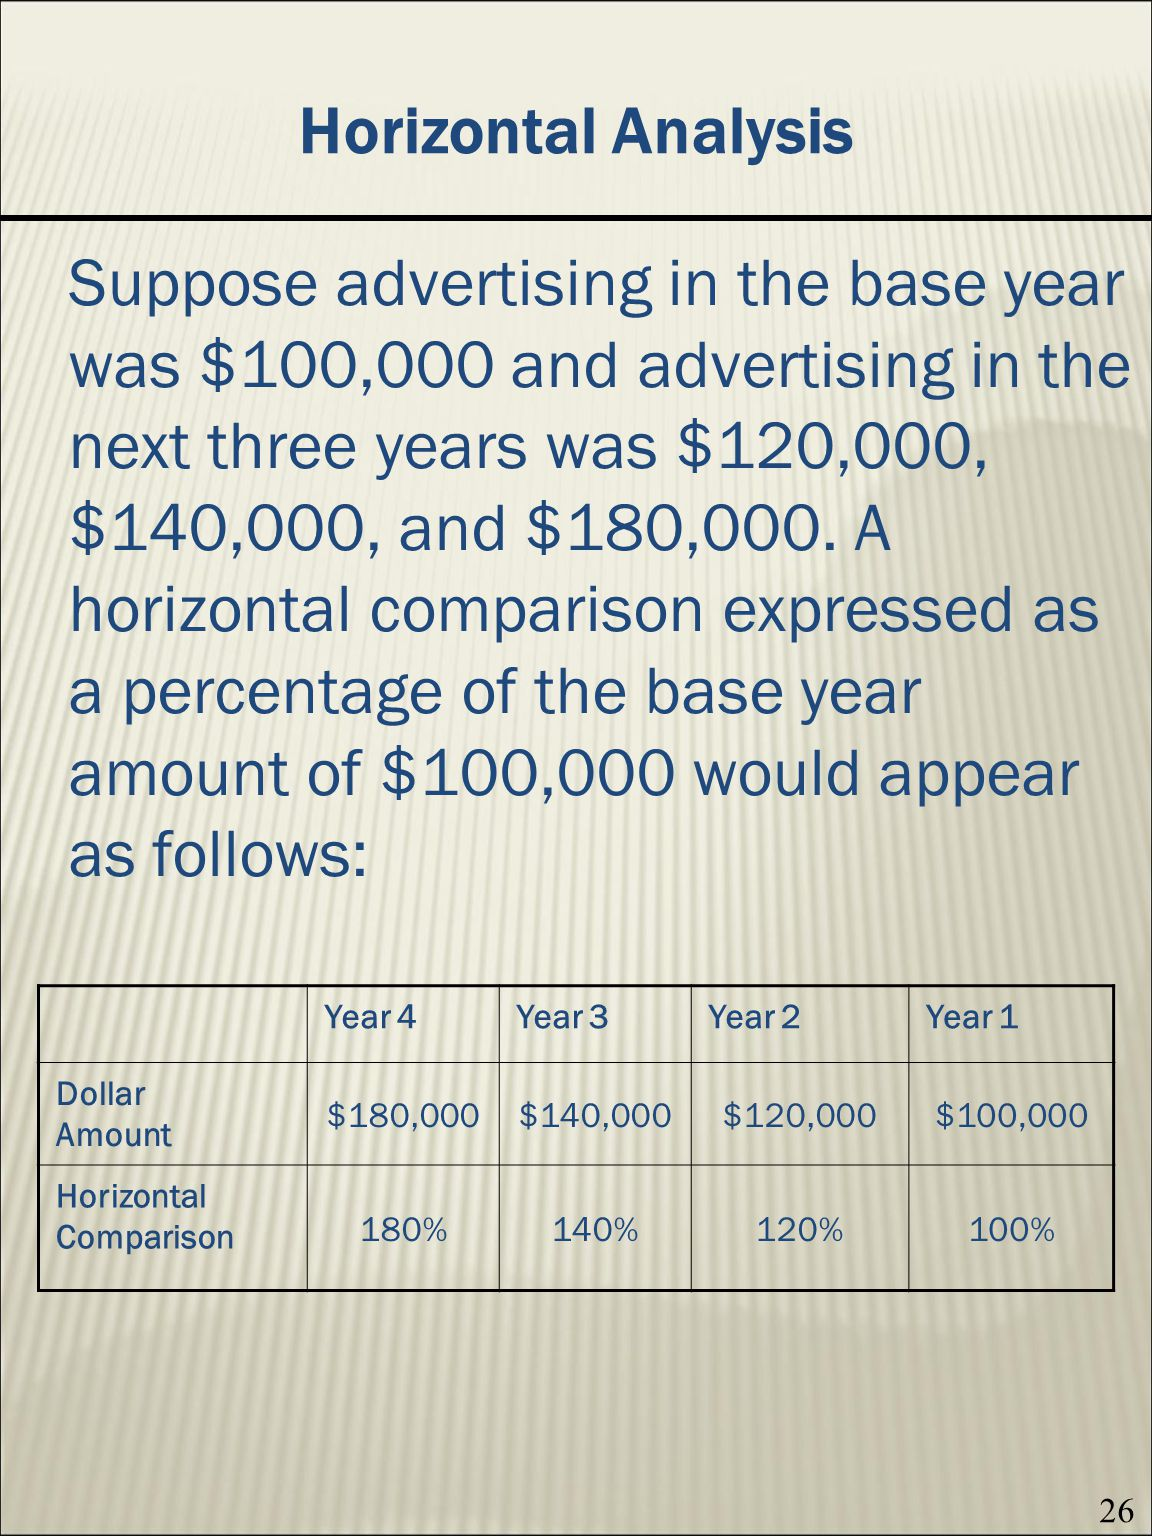 26 Horizontal Analysis Suppose advertising in the base year was $100,000 and advertising in the next three years was $120,000, $140,000, and $180,000.